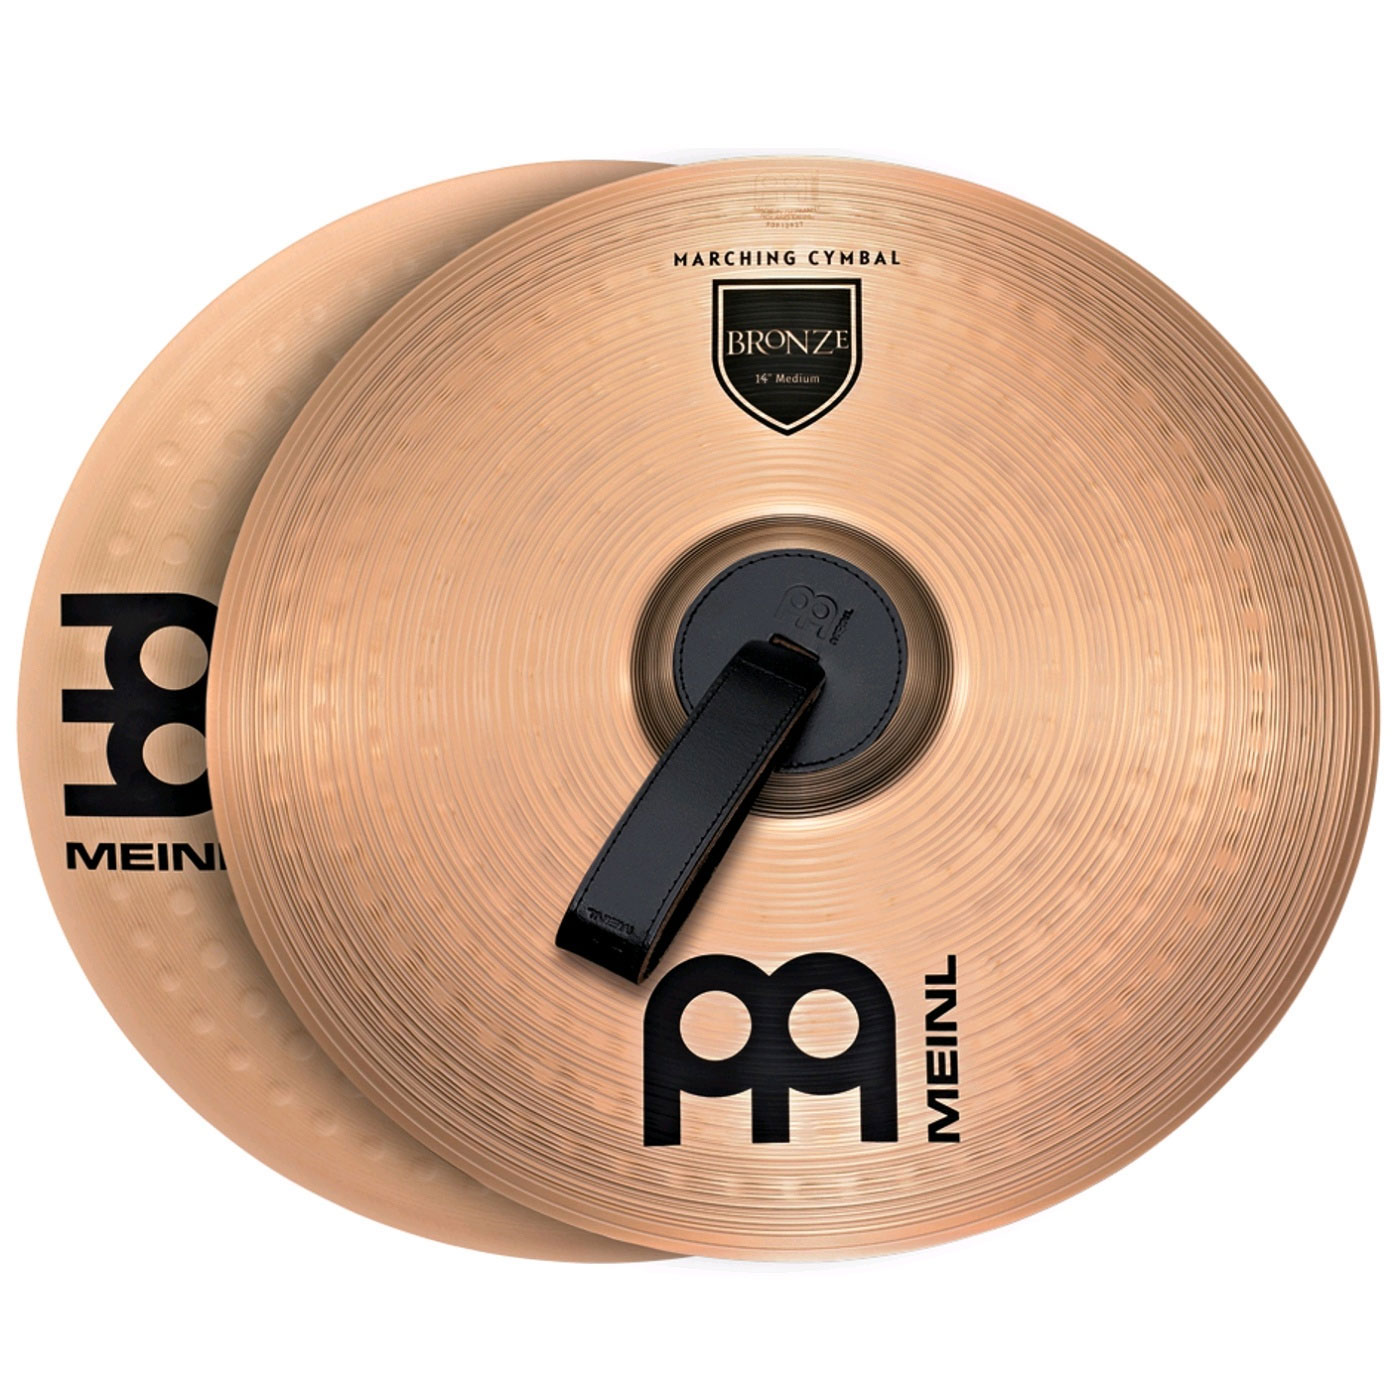 "Meinl 13"" Medium Brass Student Marching Cymbals Pair"